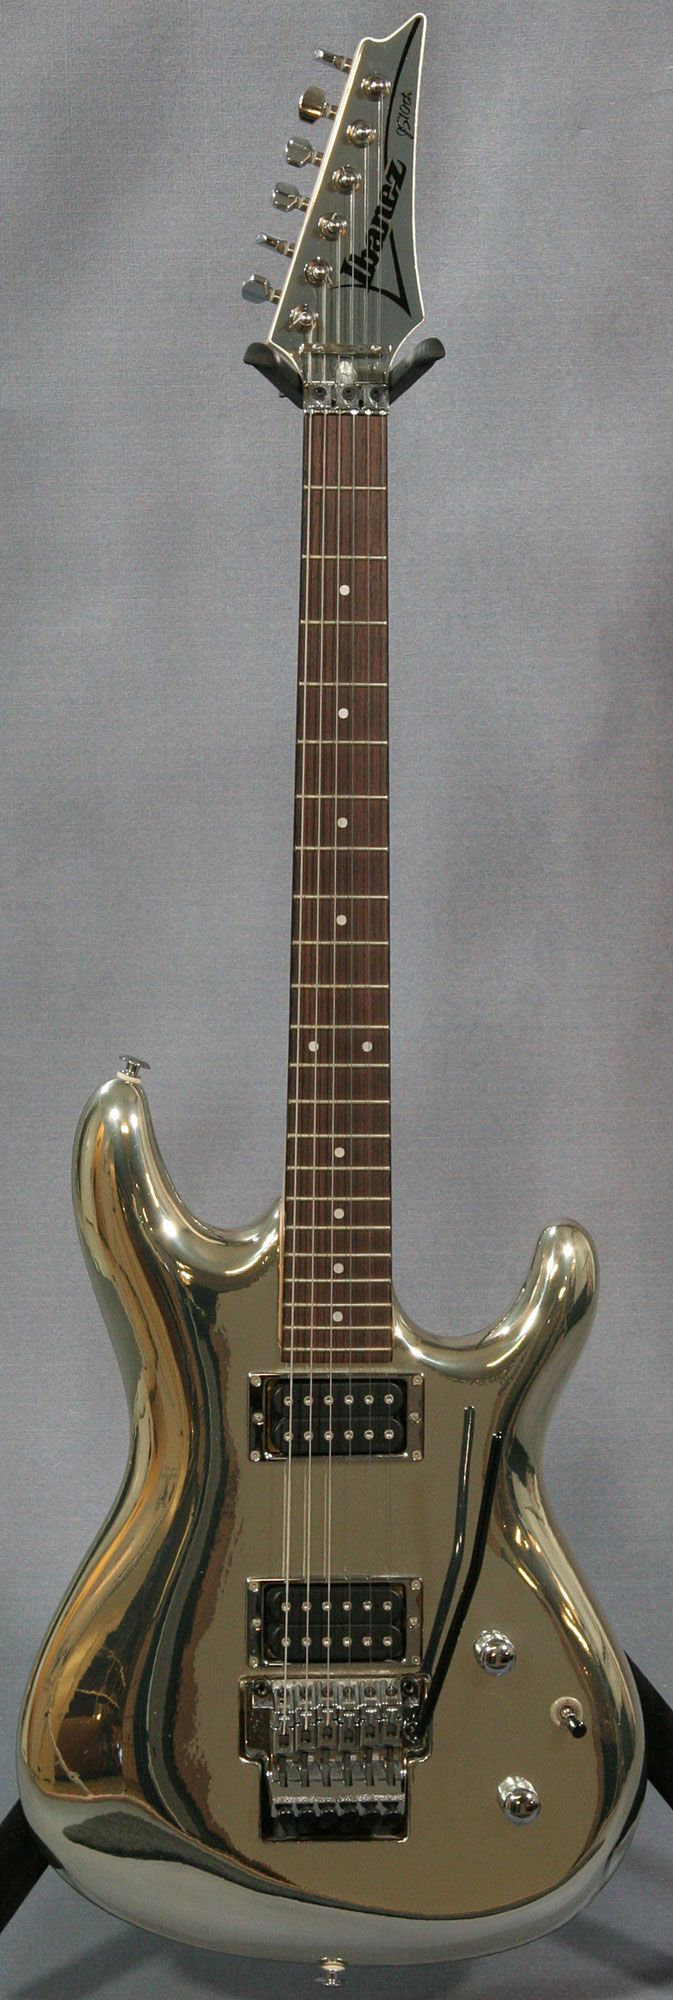 87 Best Guitars Images On Pinterest Bass Electric Free Download Iceman Guitar Wiring Diagram Ibanez Js10th